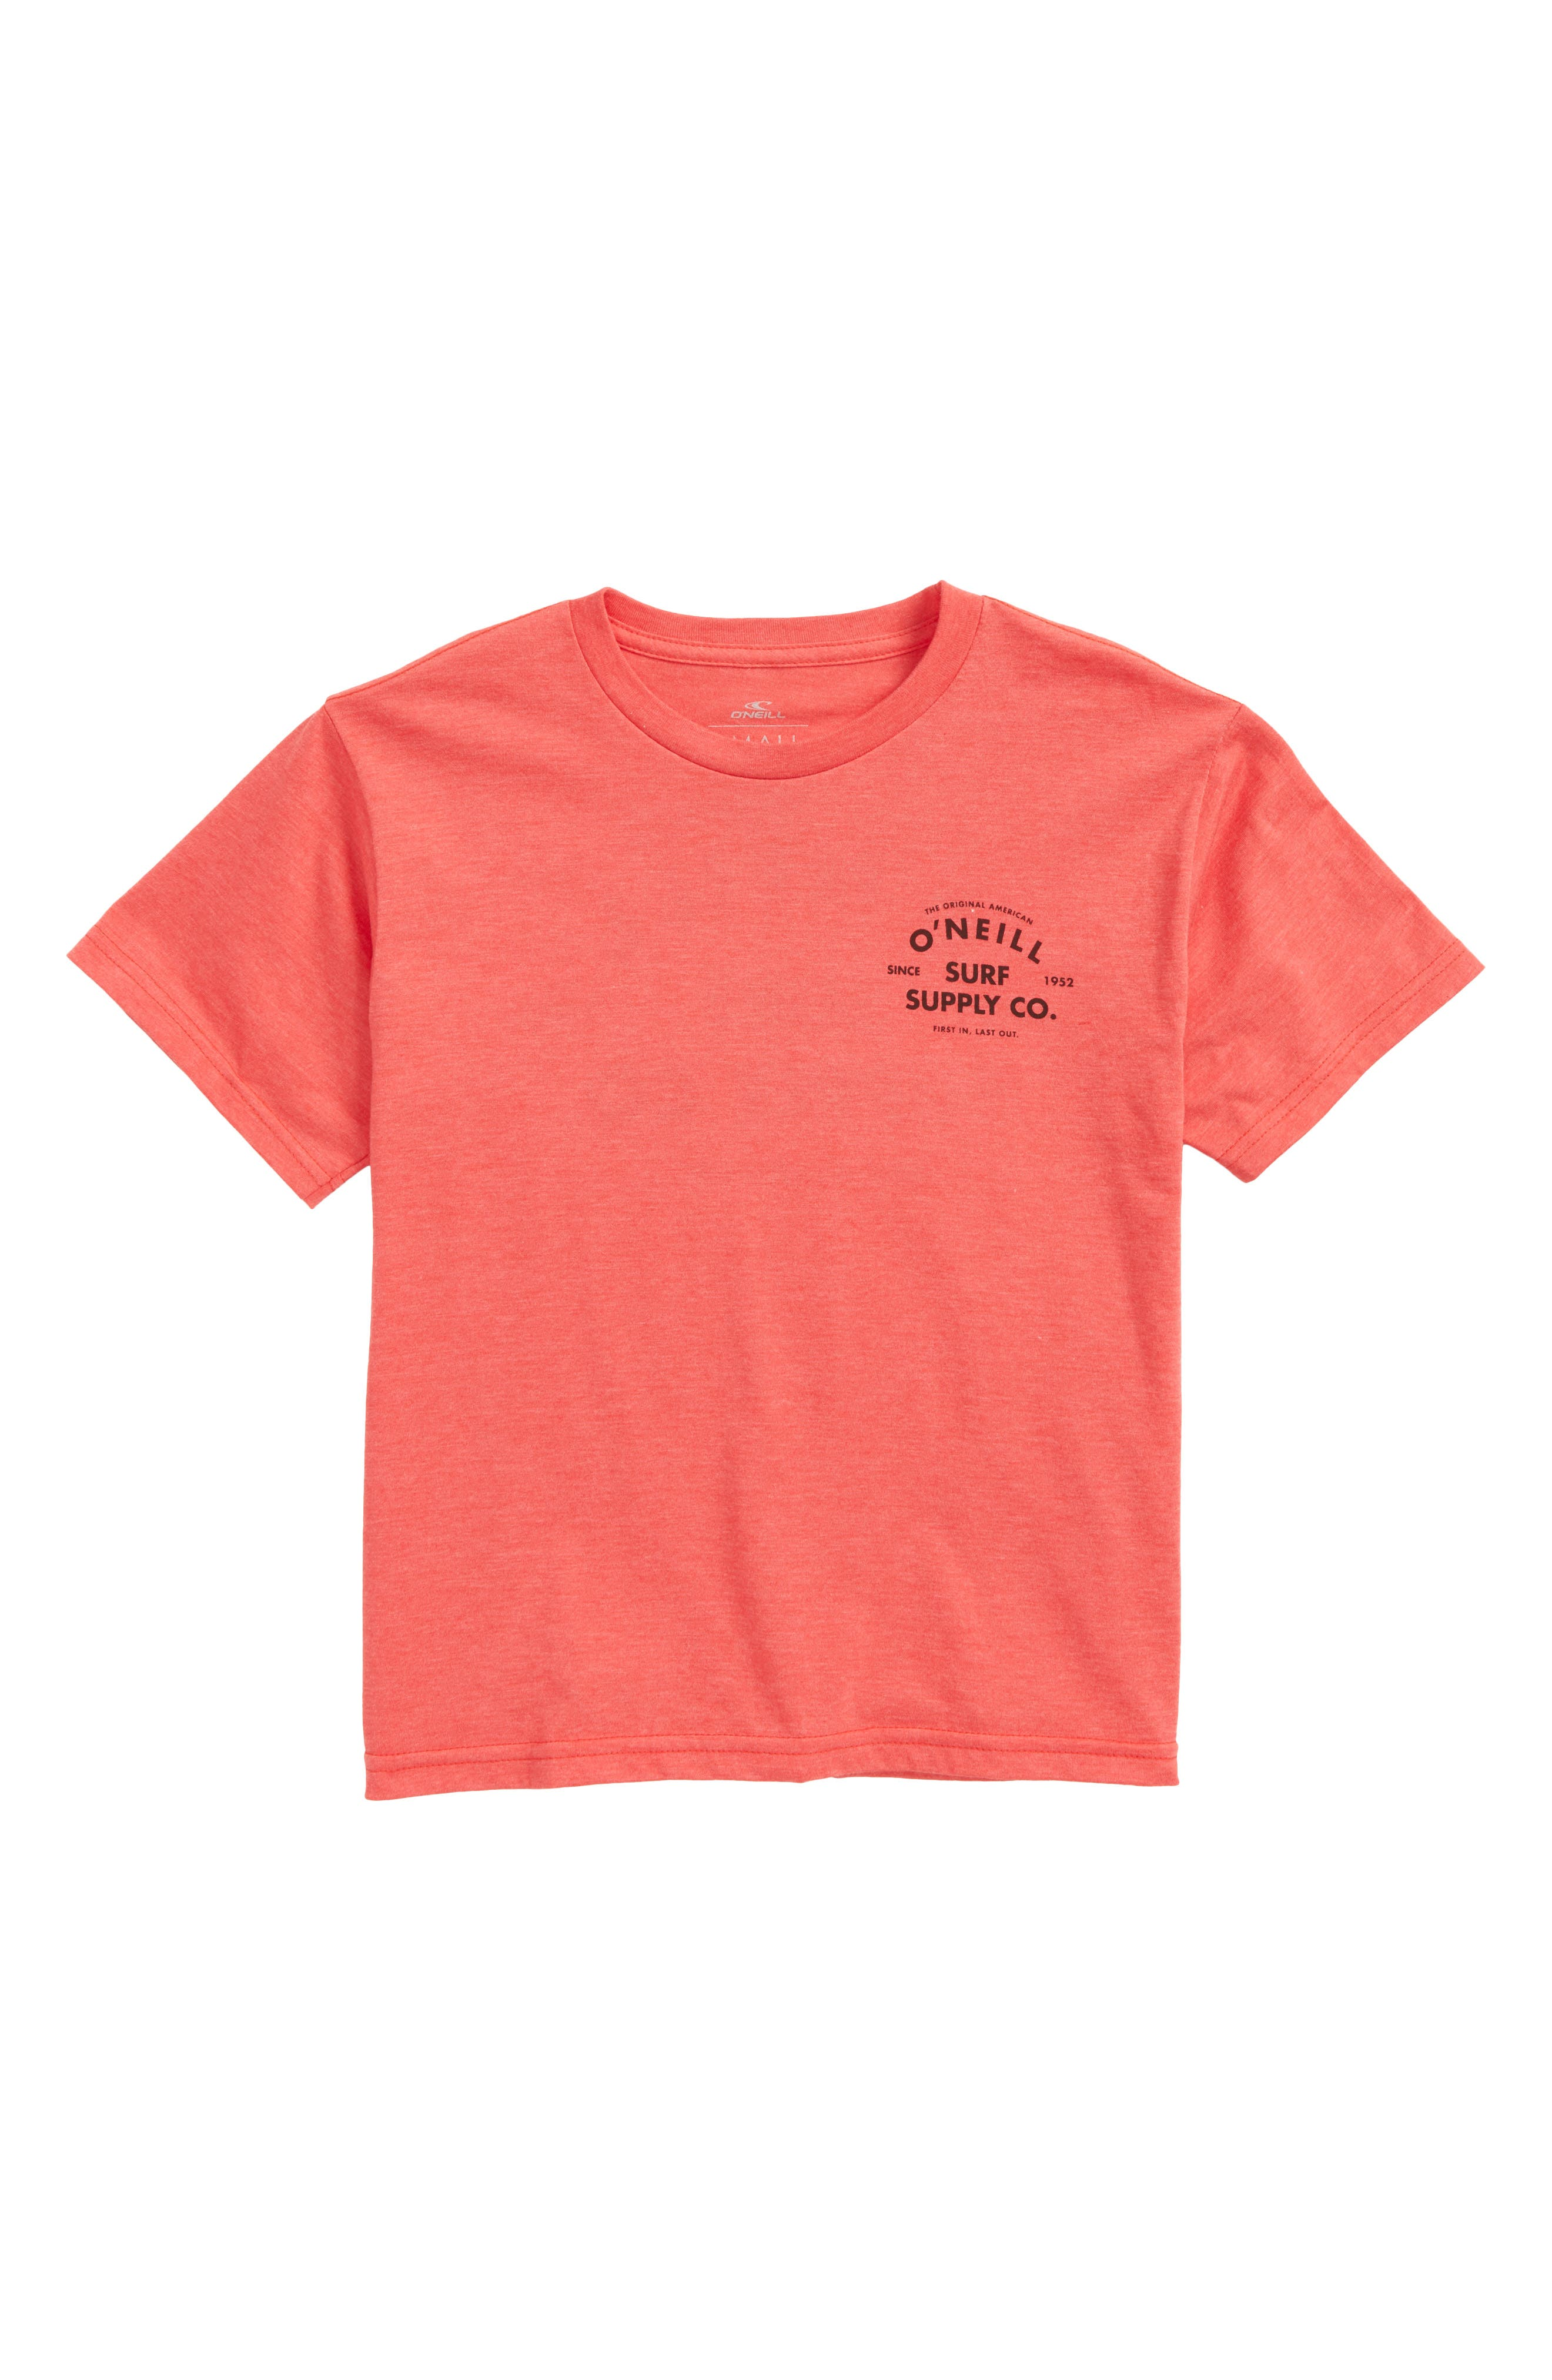 Gonner Graphic T-Shirt,                         Main,                         color, Heather Red